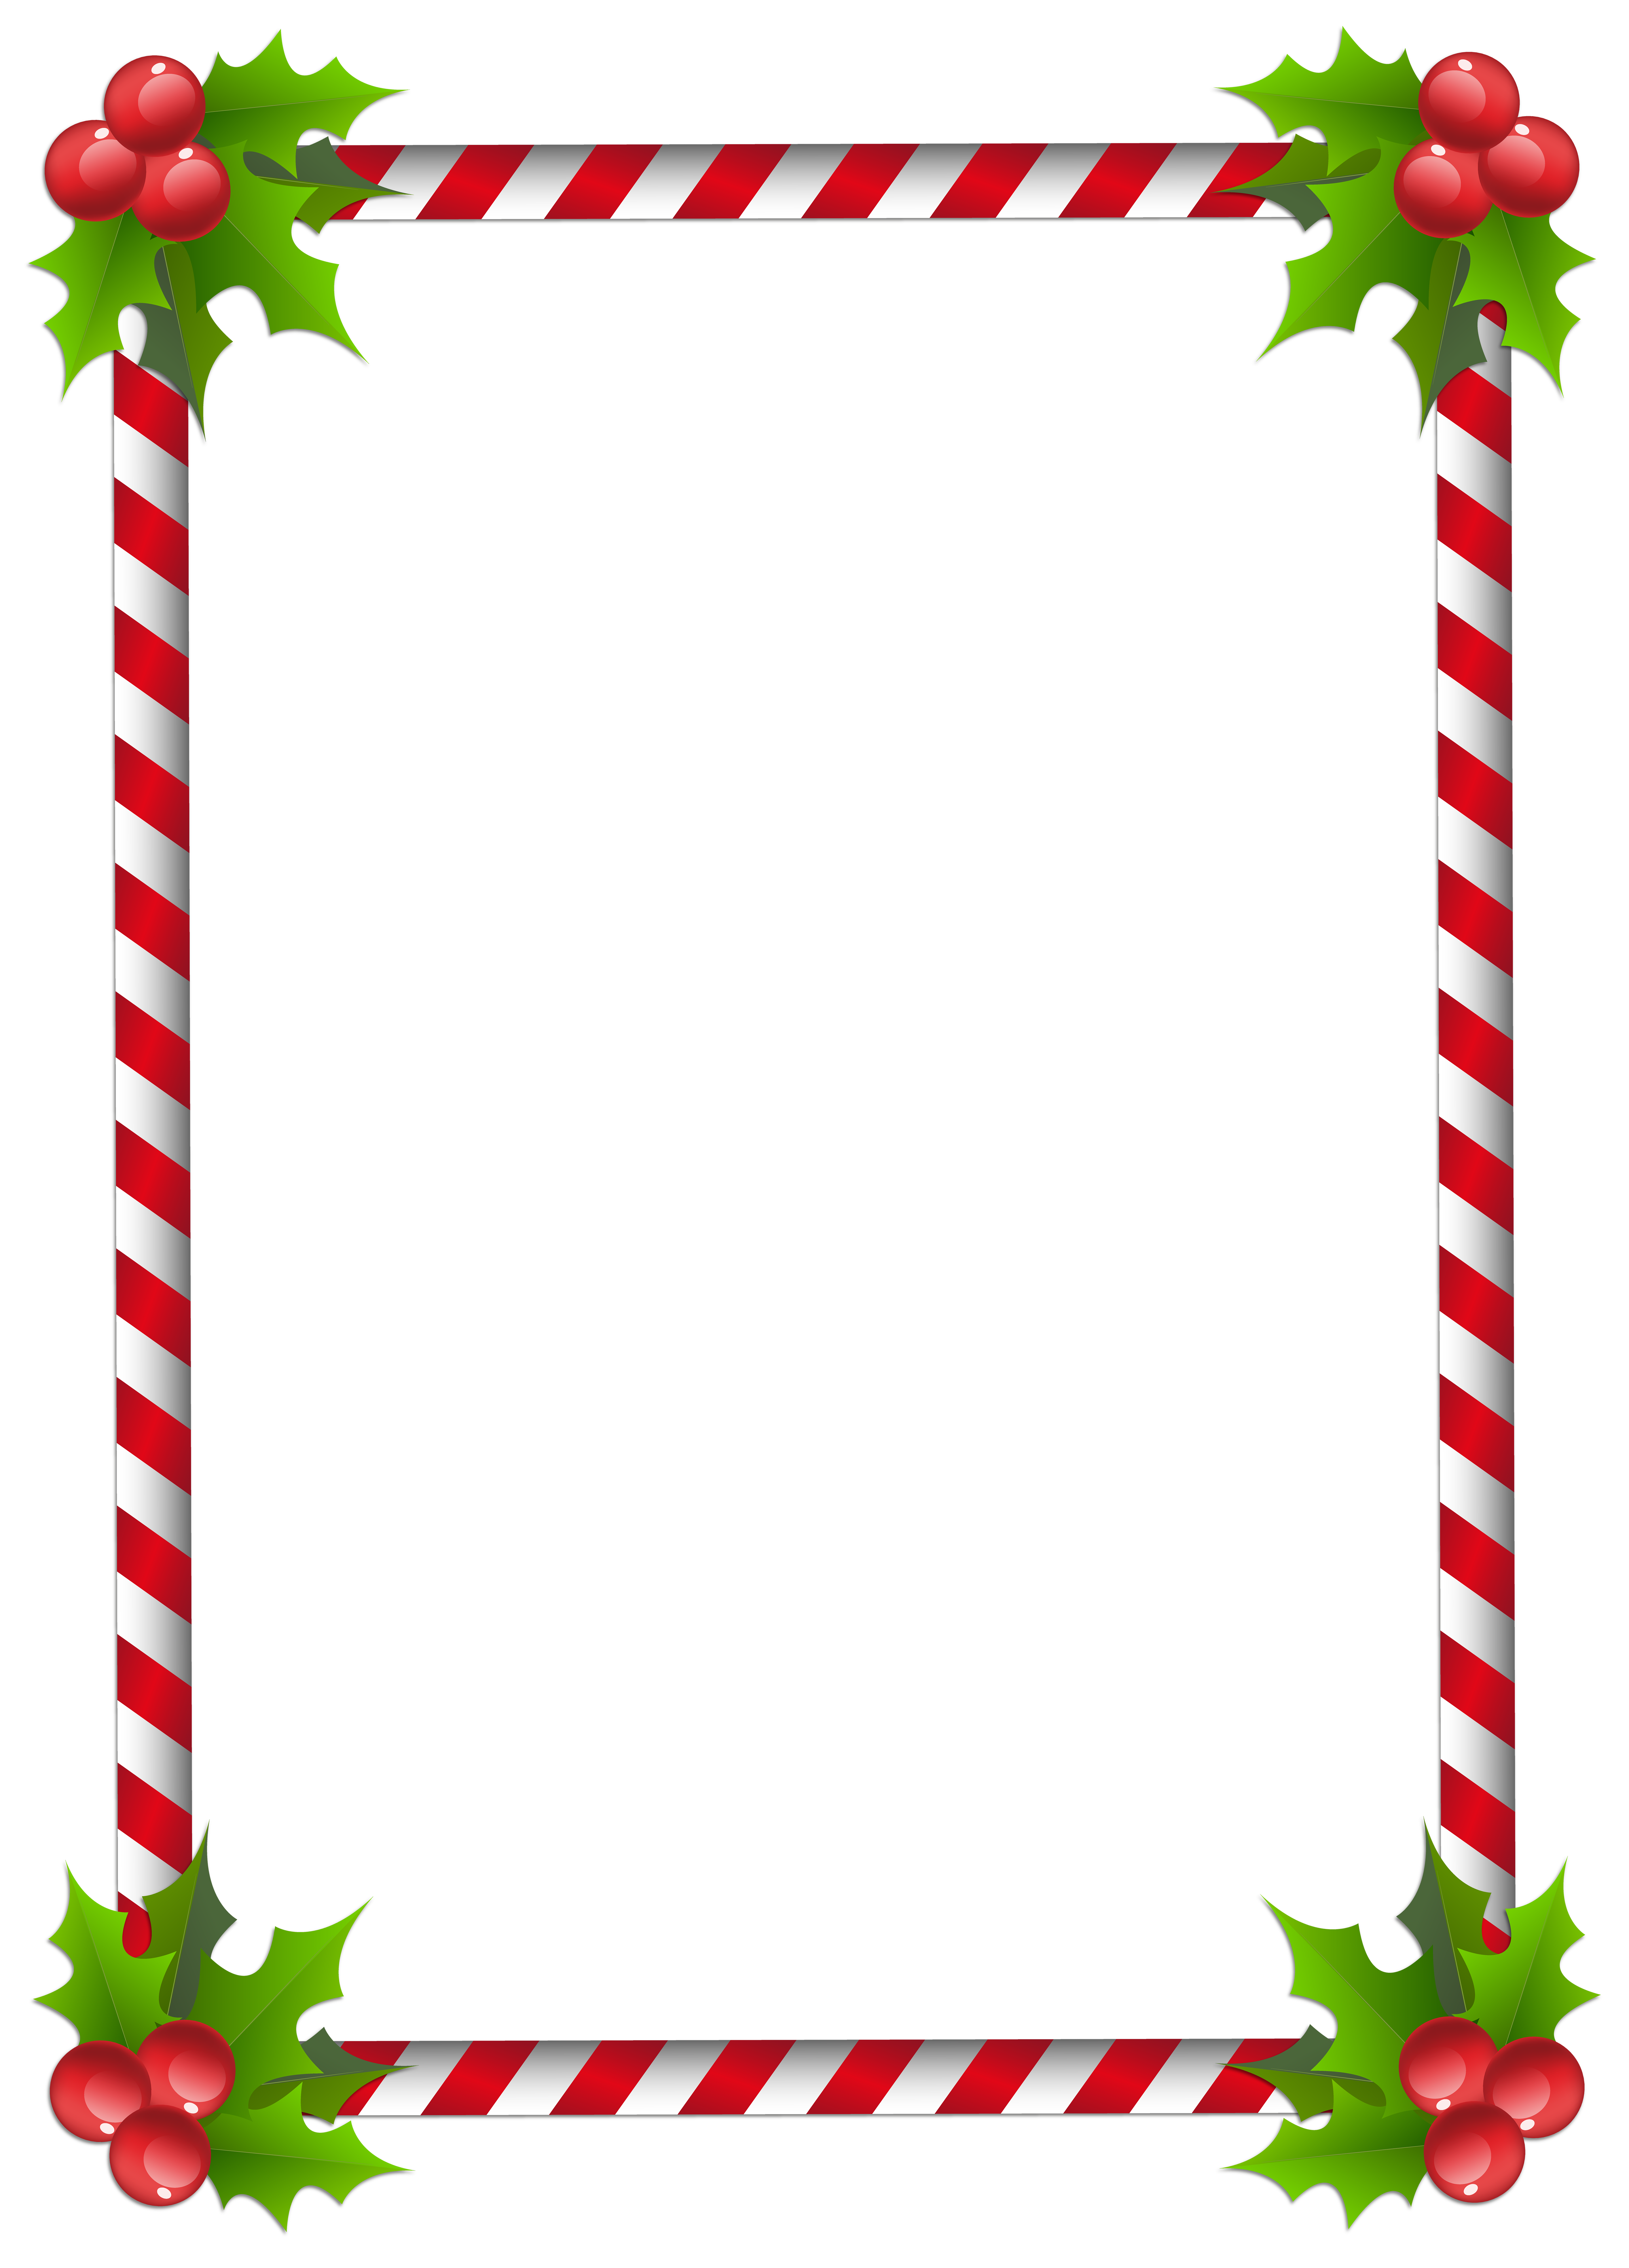 Christmas border clipart transparent vector transparent download Christmas Transparent Classic Frame Border | Gallery Yopriceville ... vector transparent download